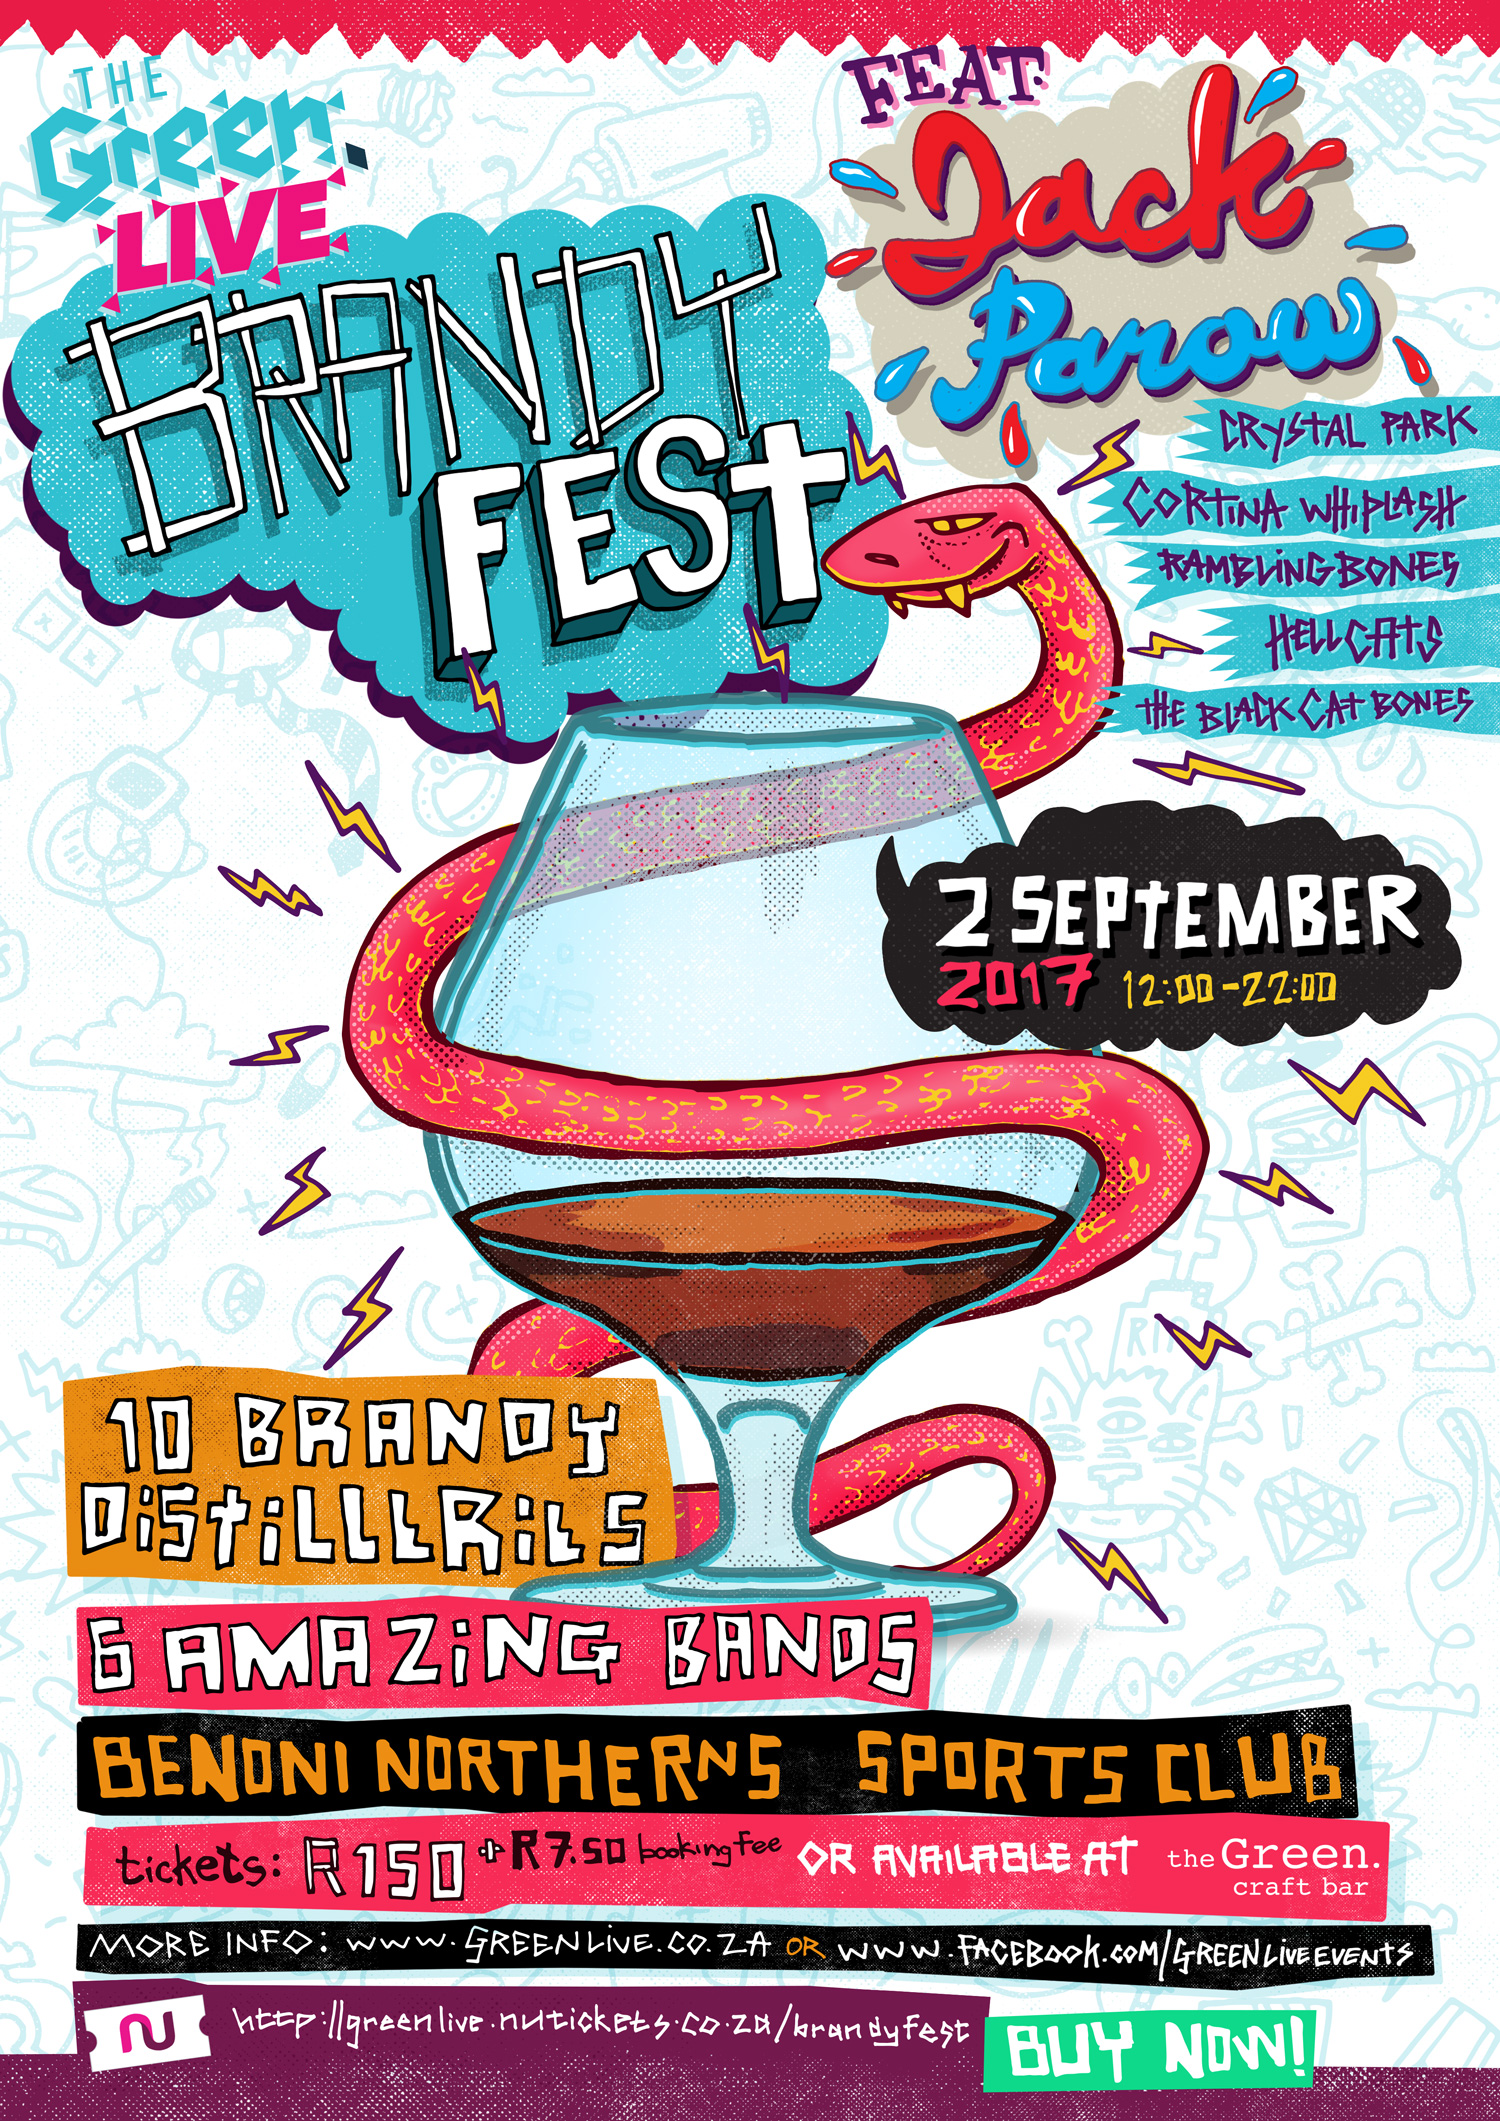 Win Tickets to the Brandy Fest